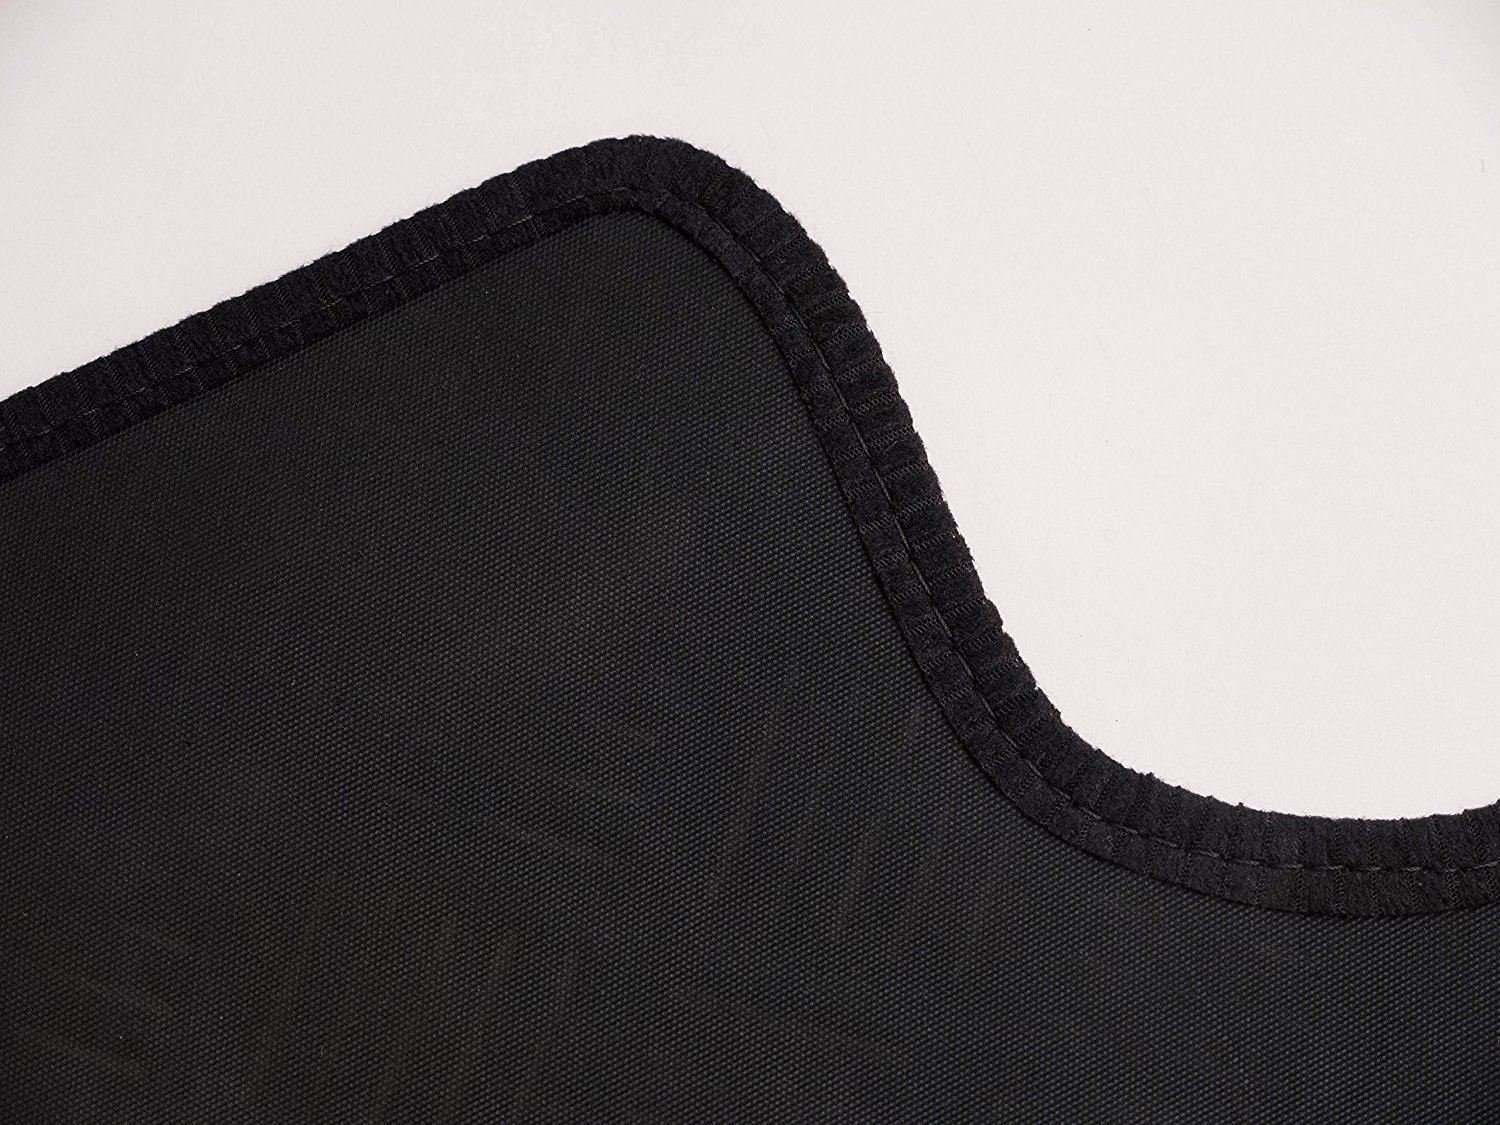 UKB4C Fully Tailored Rubber Car Mats for Celerio 14 Set of 4 With 2 Clips